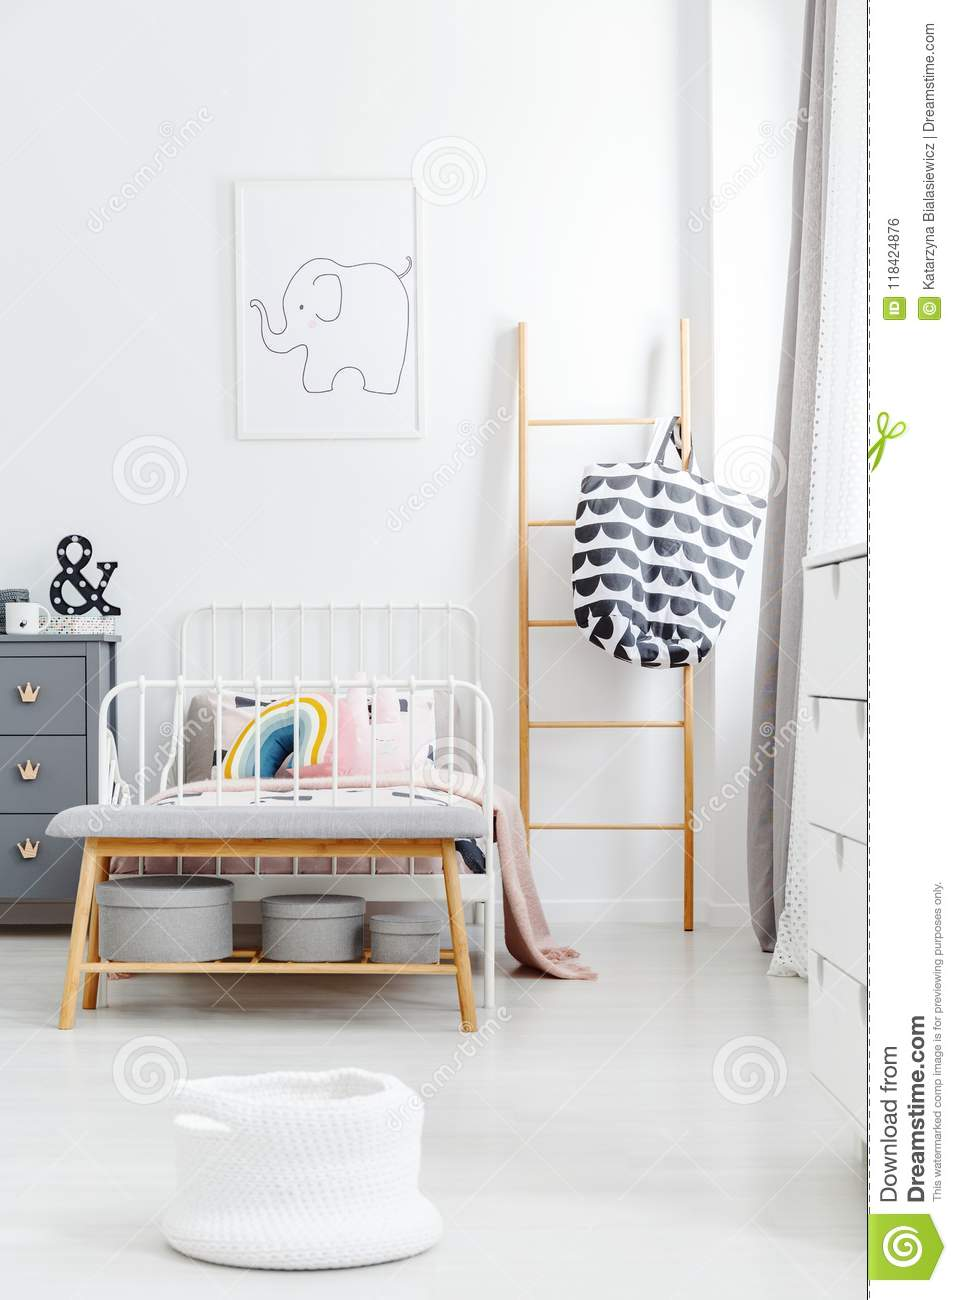 Wooden Ladder And Bench Near White Bed In Kid S Bedroom Interior Stock Photo Image Of Colorful Pastel 118424876